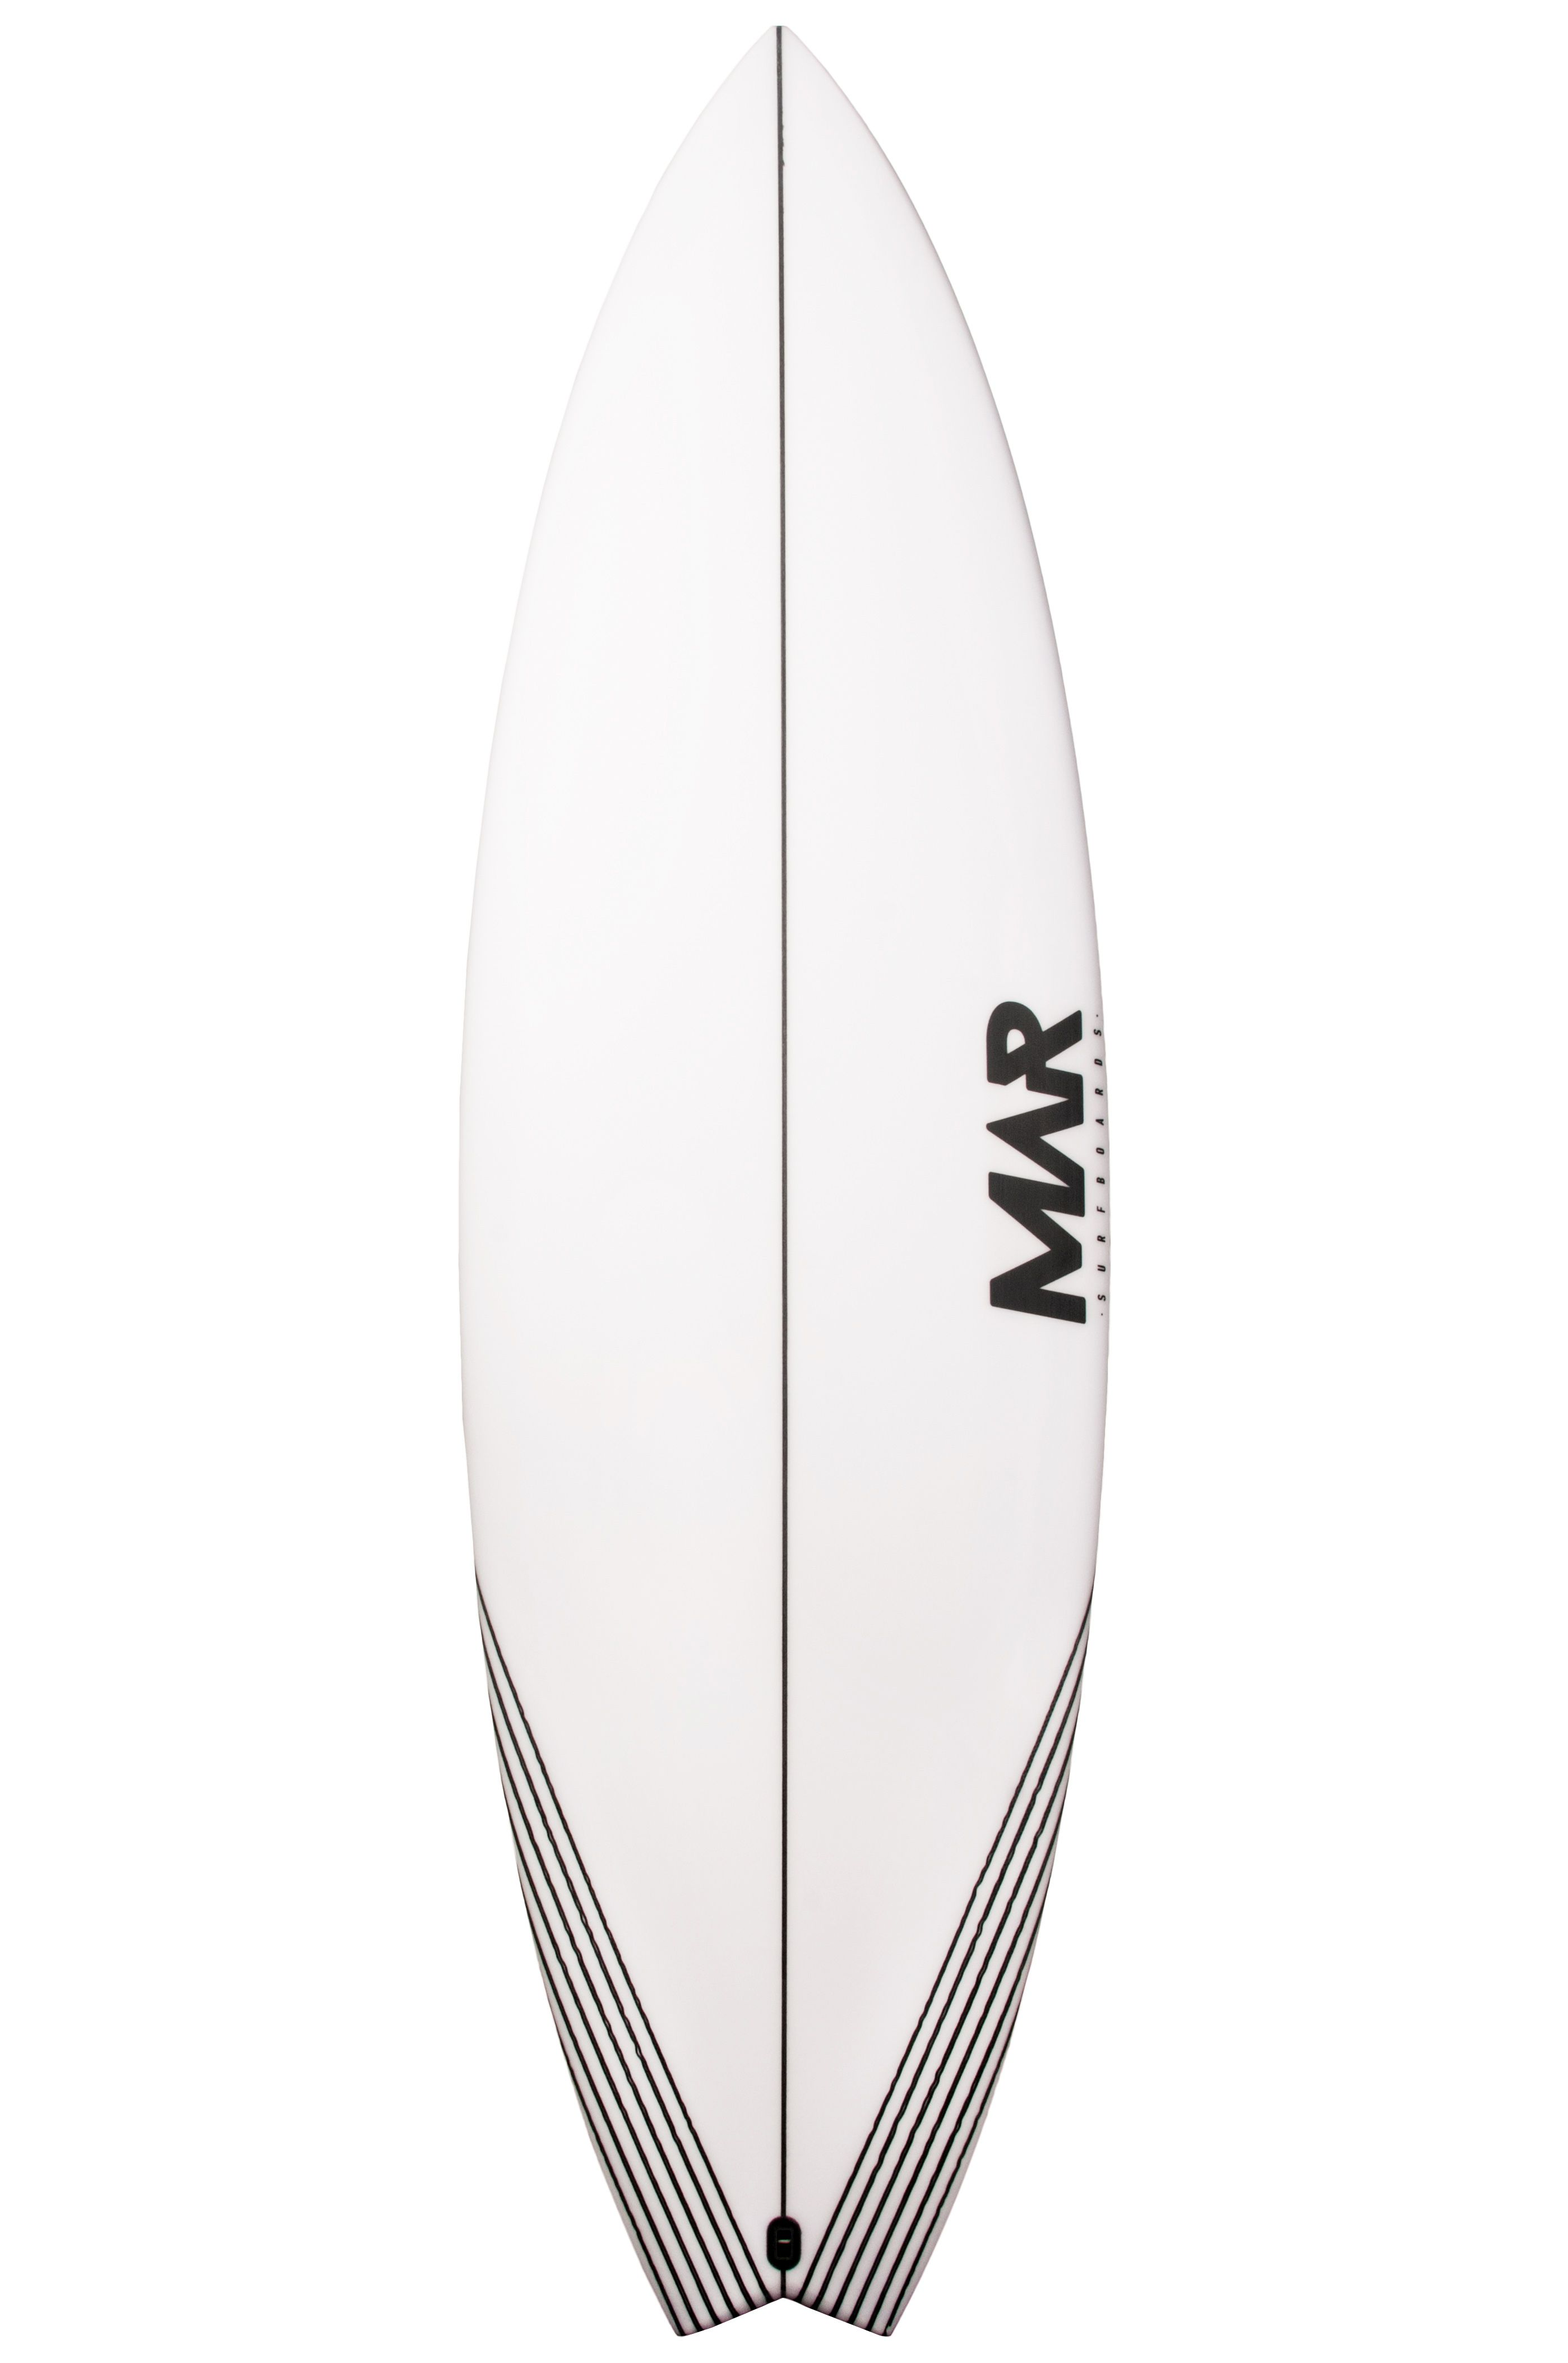 Prancha Surf Mar 5'8 PARROT PU Swallow Tail - White FCS II 5ft8